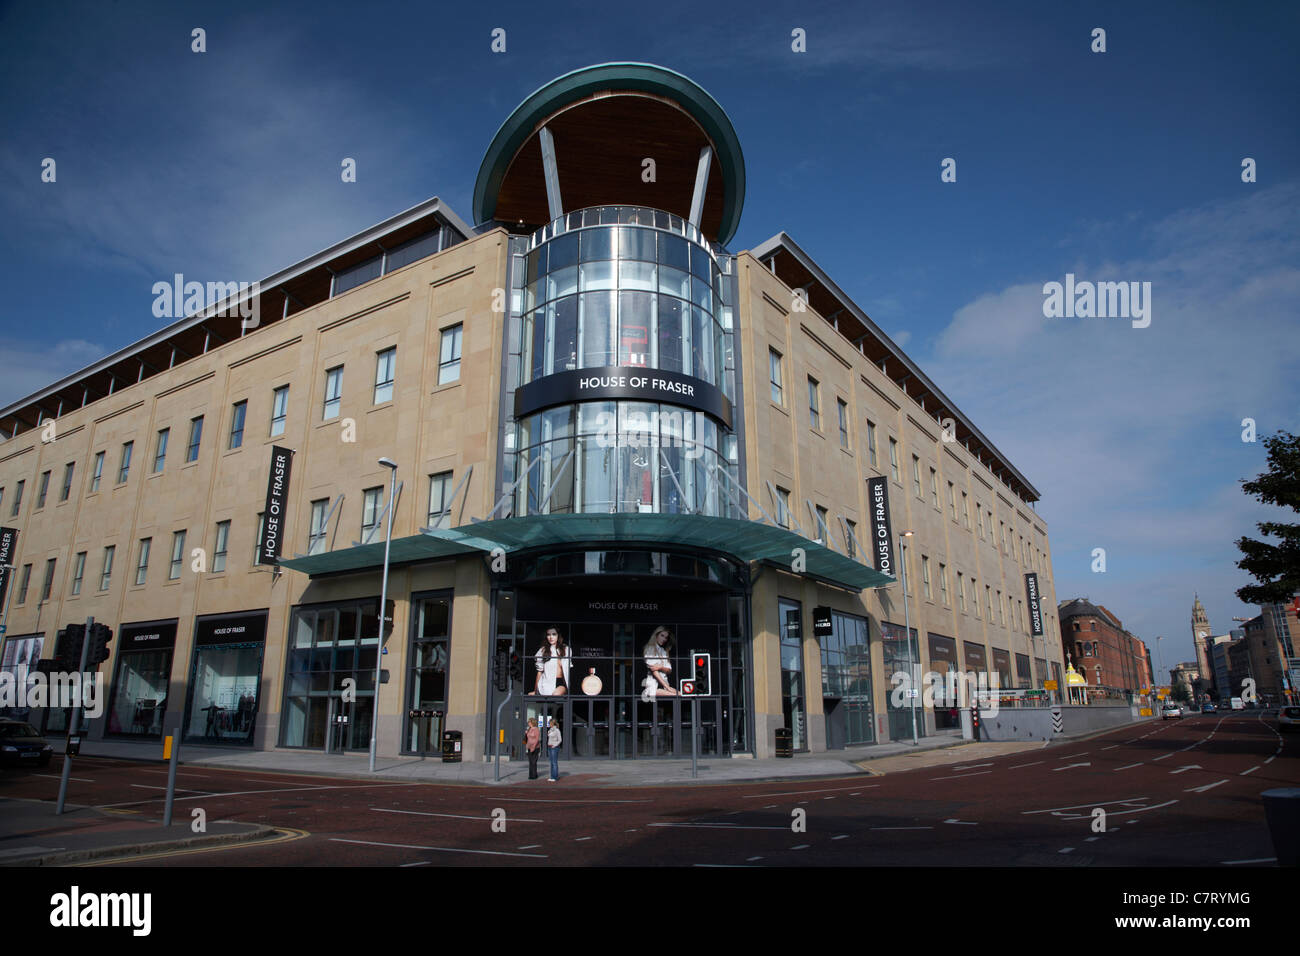 House of Fraser at Victoria Square shopping centre, Belfast, Northern Ireland, UK. - Stock Image